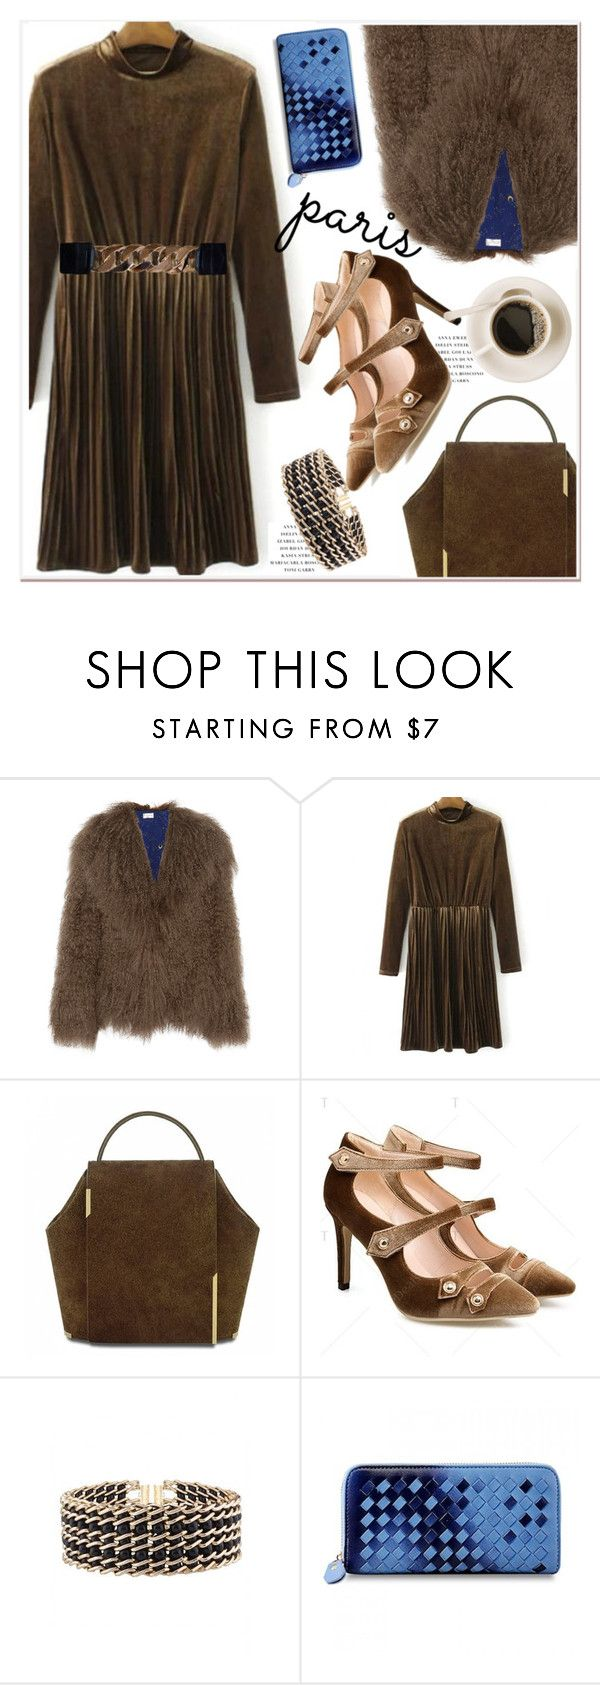 """""""Pack and Go: Winter Getaway"""" by paculi ❤ liked on Polyvore featuring Saks Potts and City Chic"""